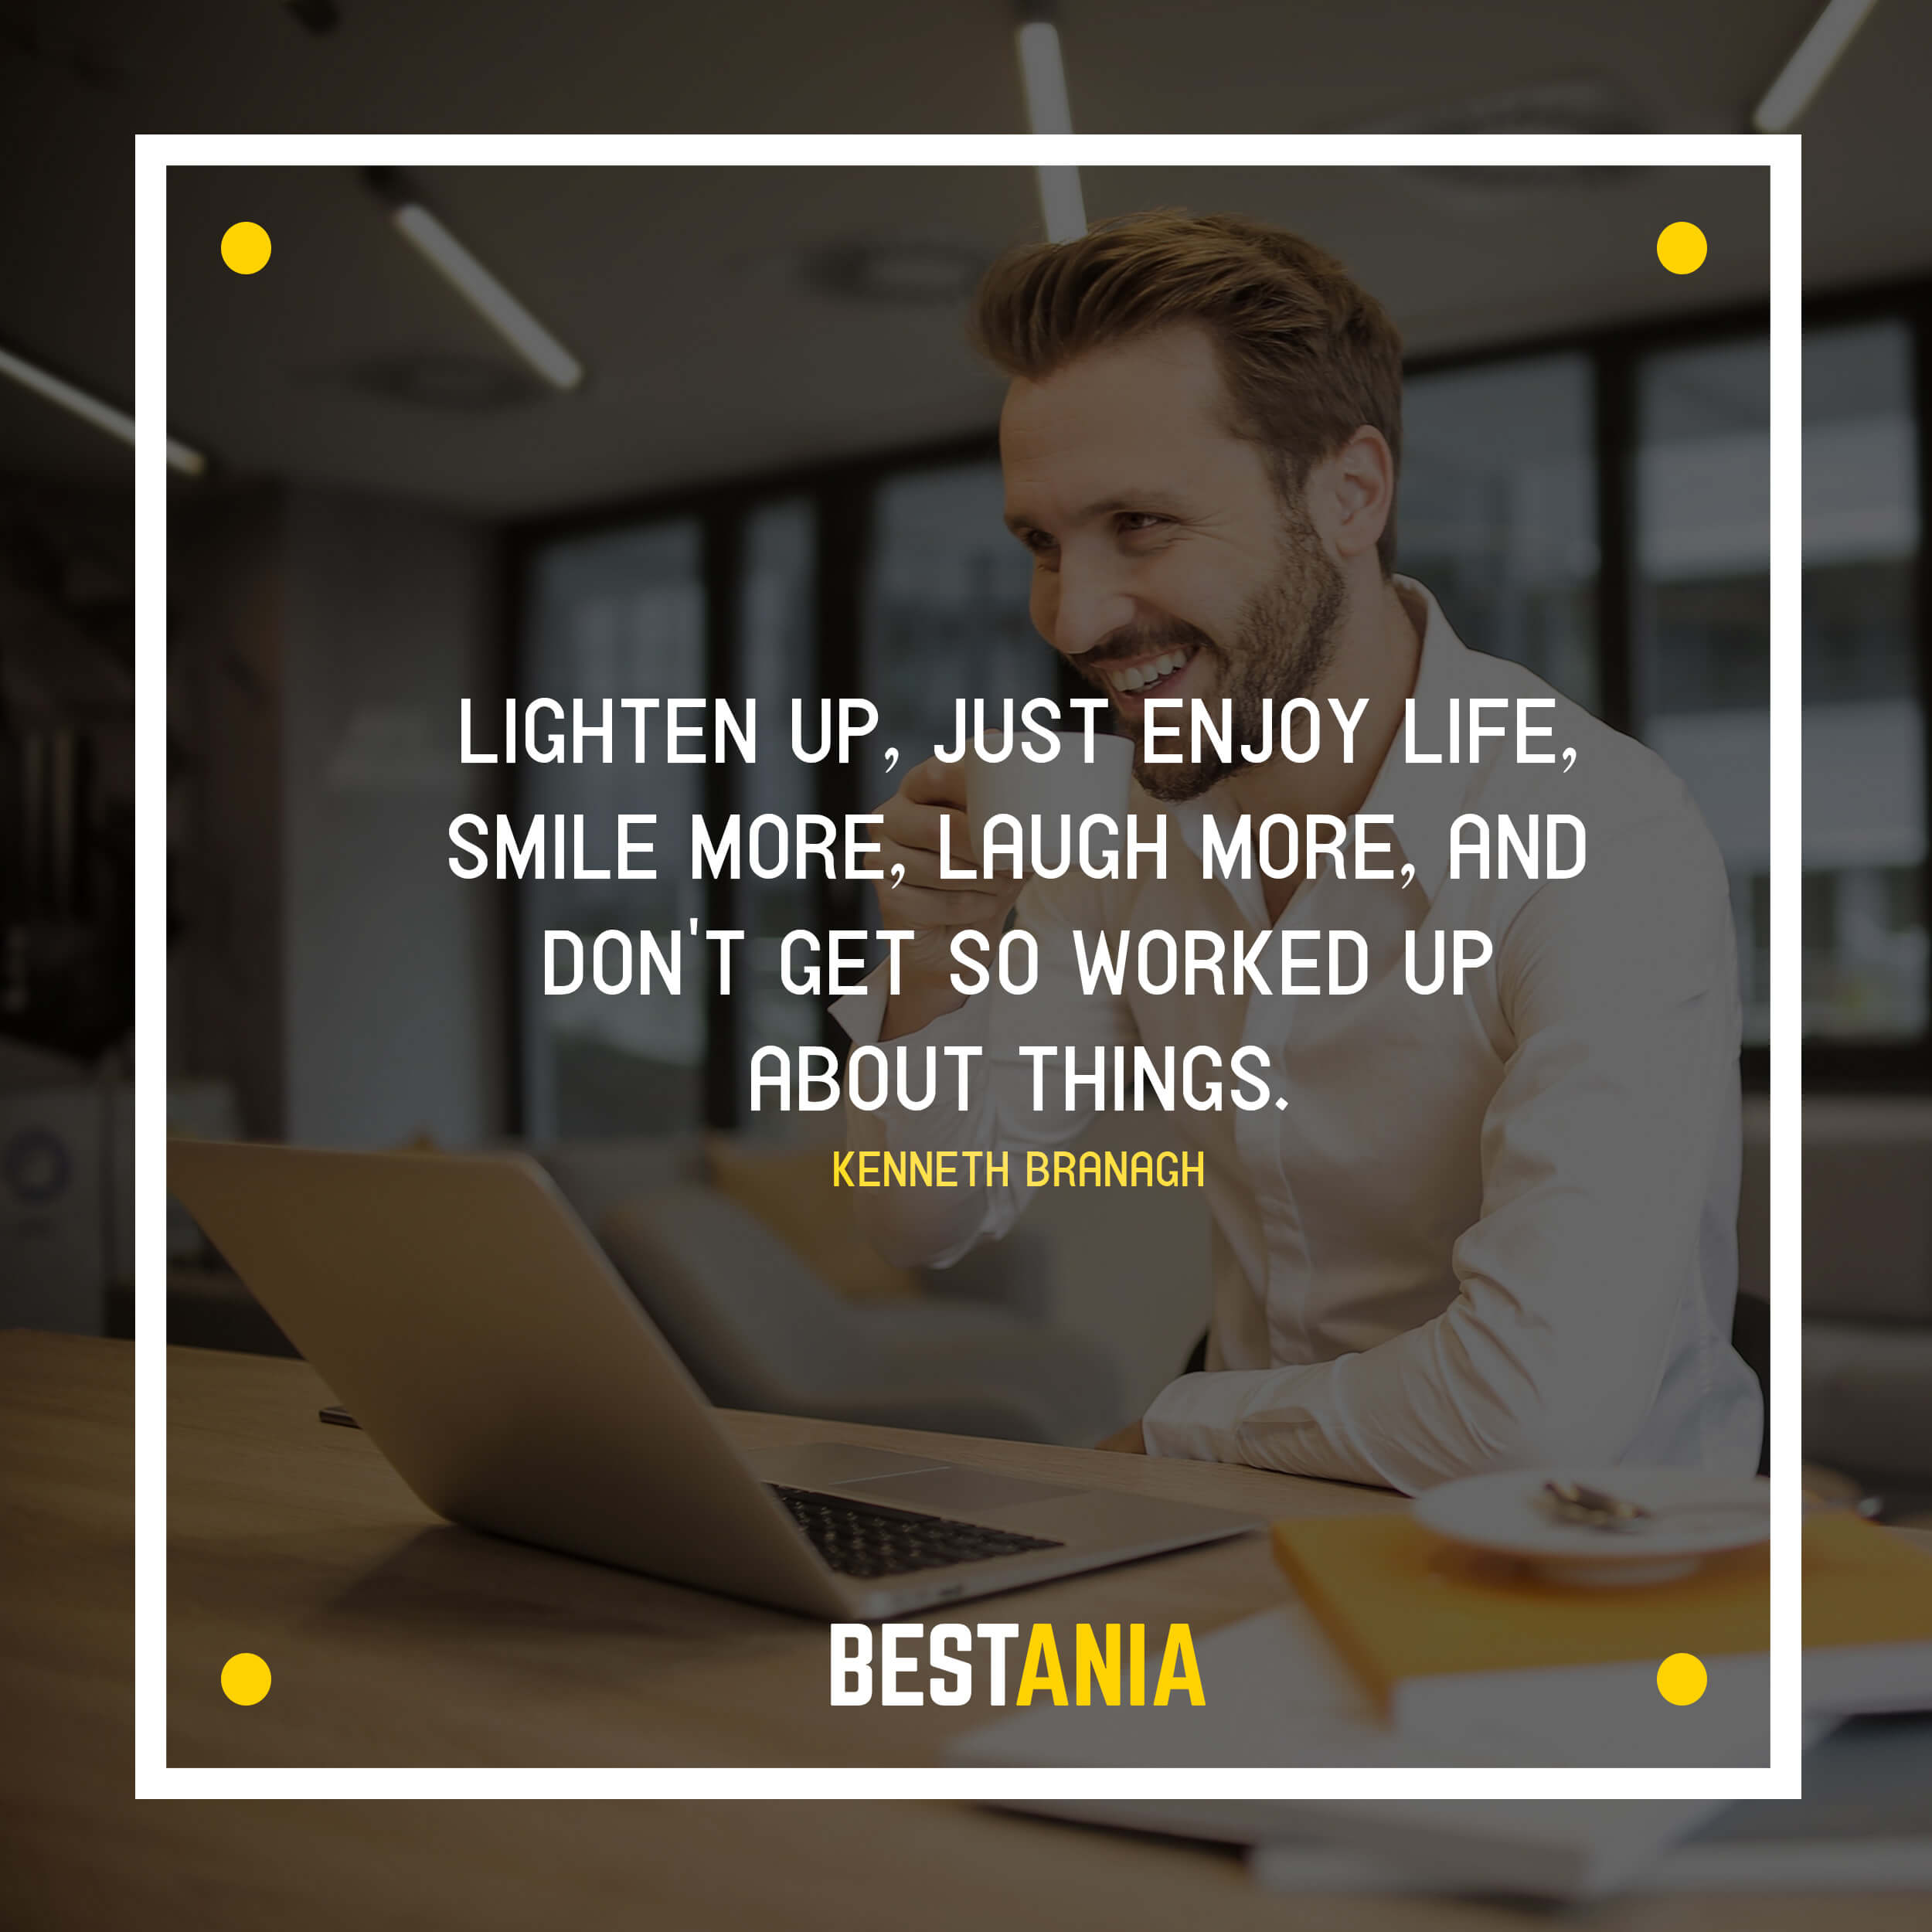 """""""LIGHTEN UP, JUST ENJOY LIFE, SMILE MORE, LAUGH MORE, AND DON'T GET SO WORKED UP ABOUT THINGS.""""  KENNETH BRANAGH"""